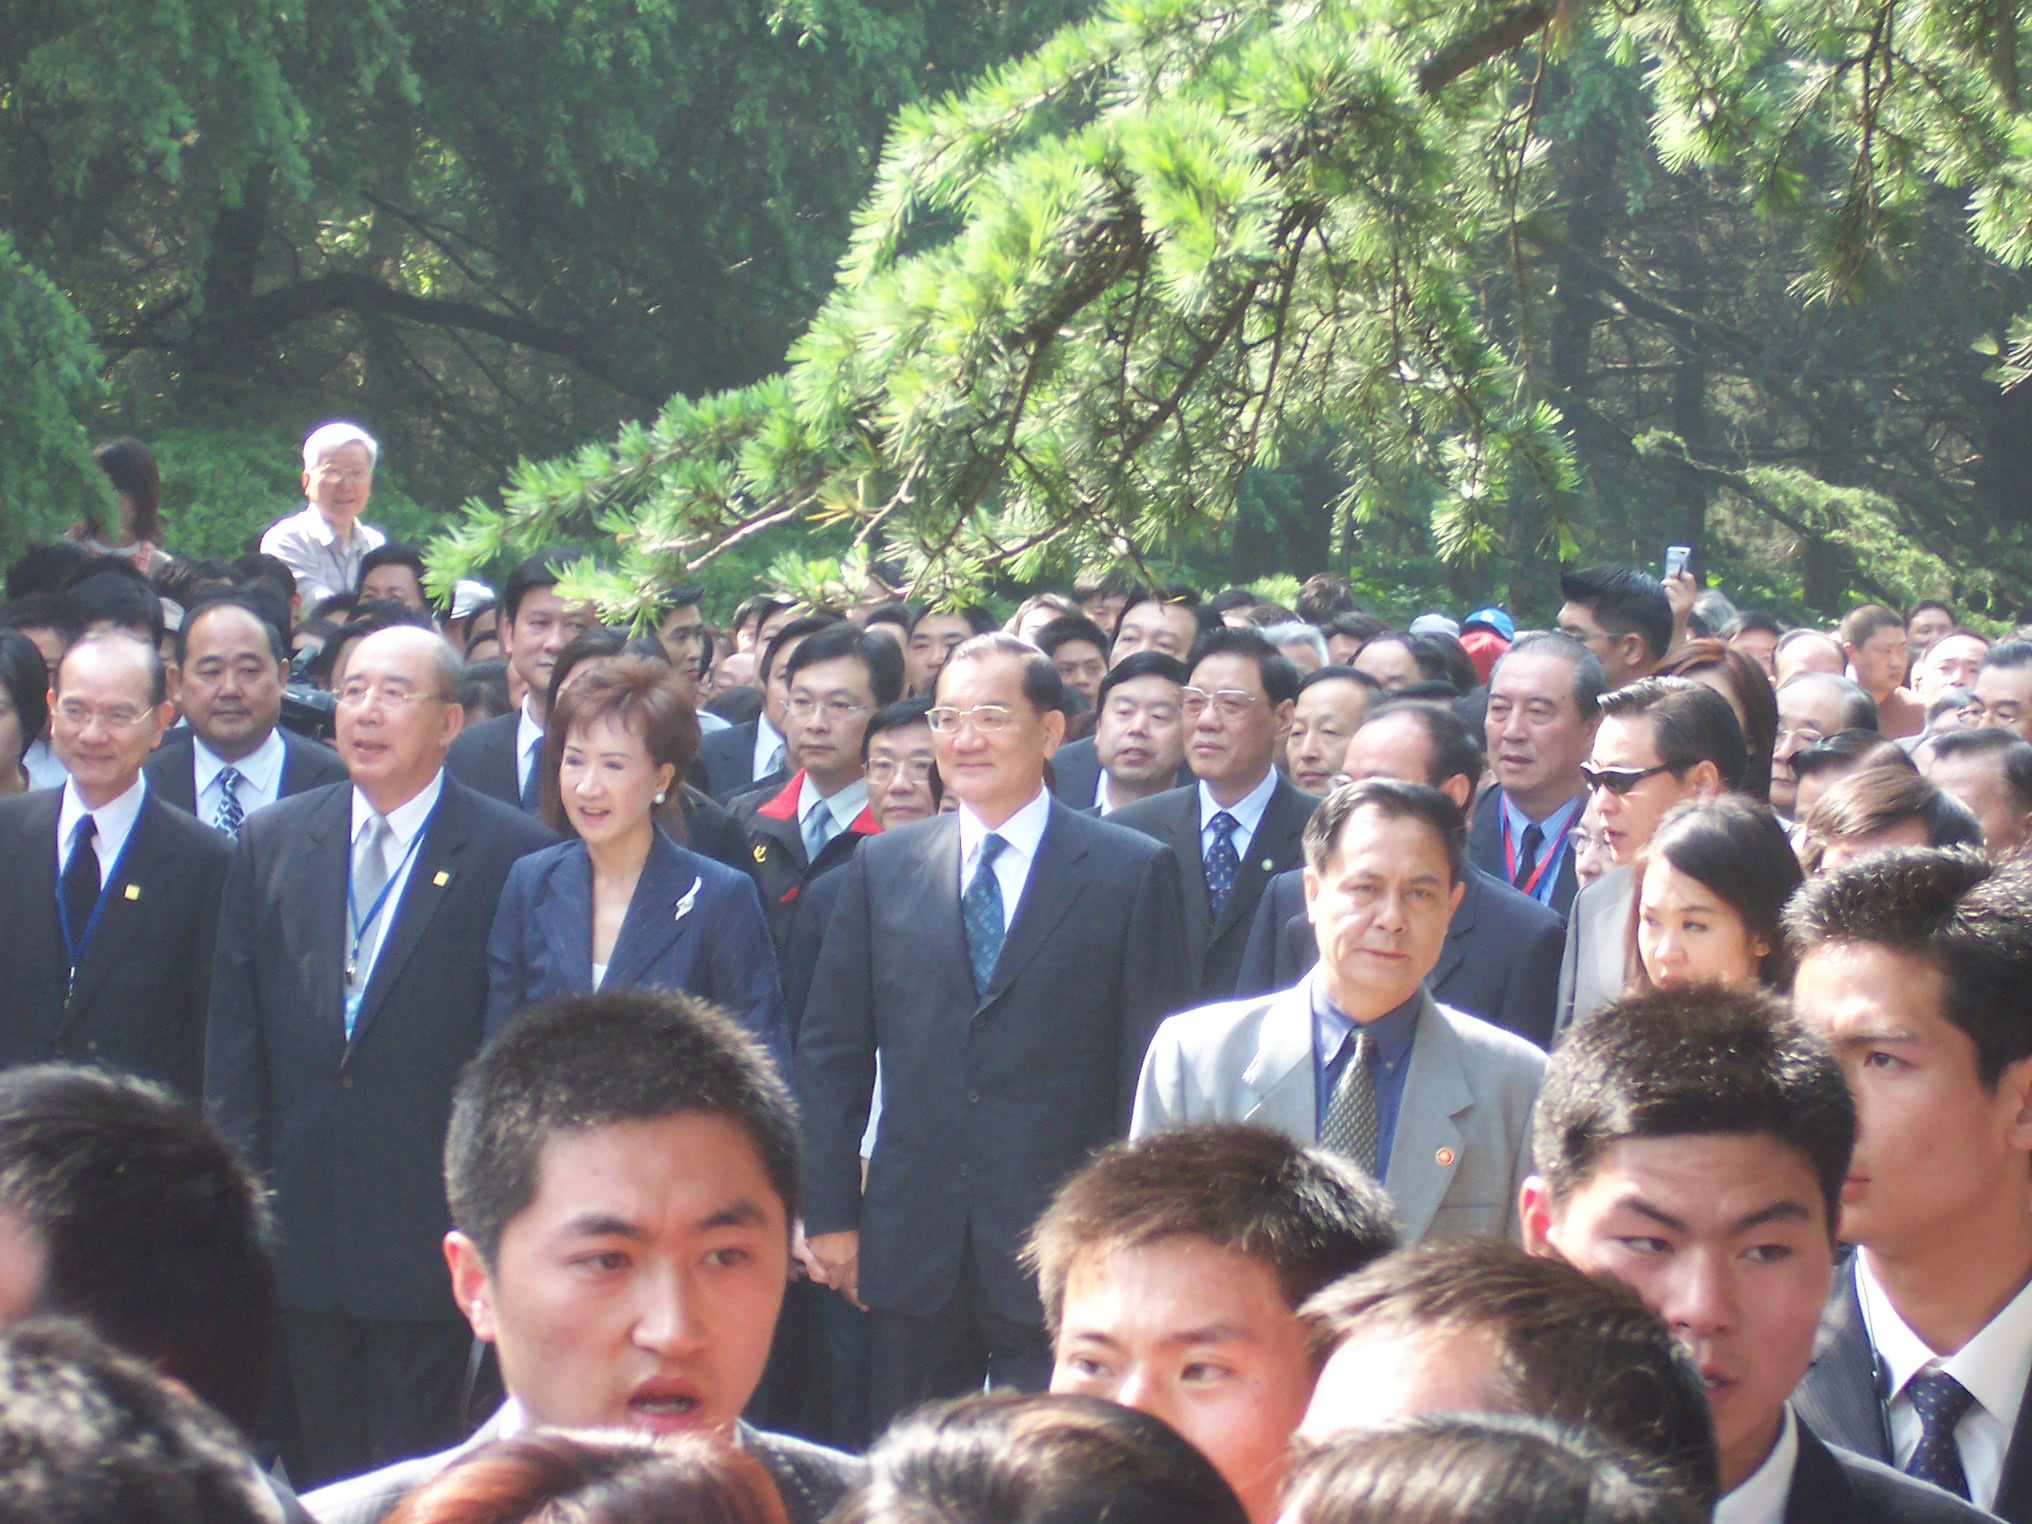 Lien Chan [middle] and Wu Po-hsiung [second left] and the Kuomintang touring the Sun Yat-sen Mausoleum in Nanjing, the People's Republic of China. The Pan-Blue coalition visited the mainland in 2005.